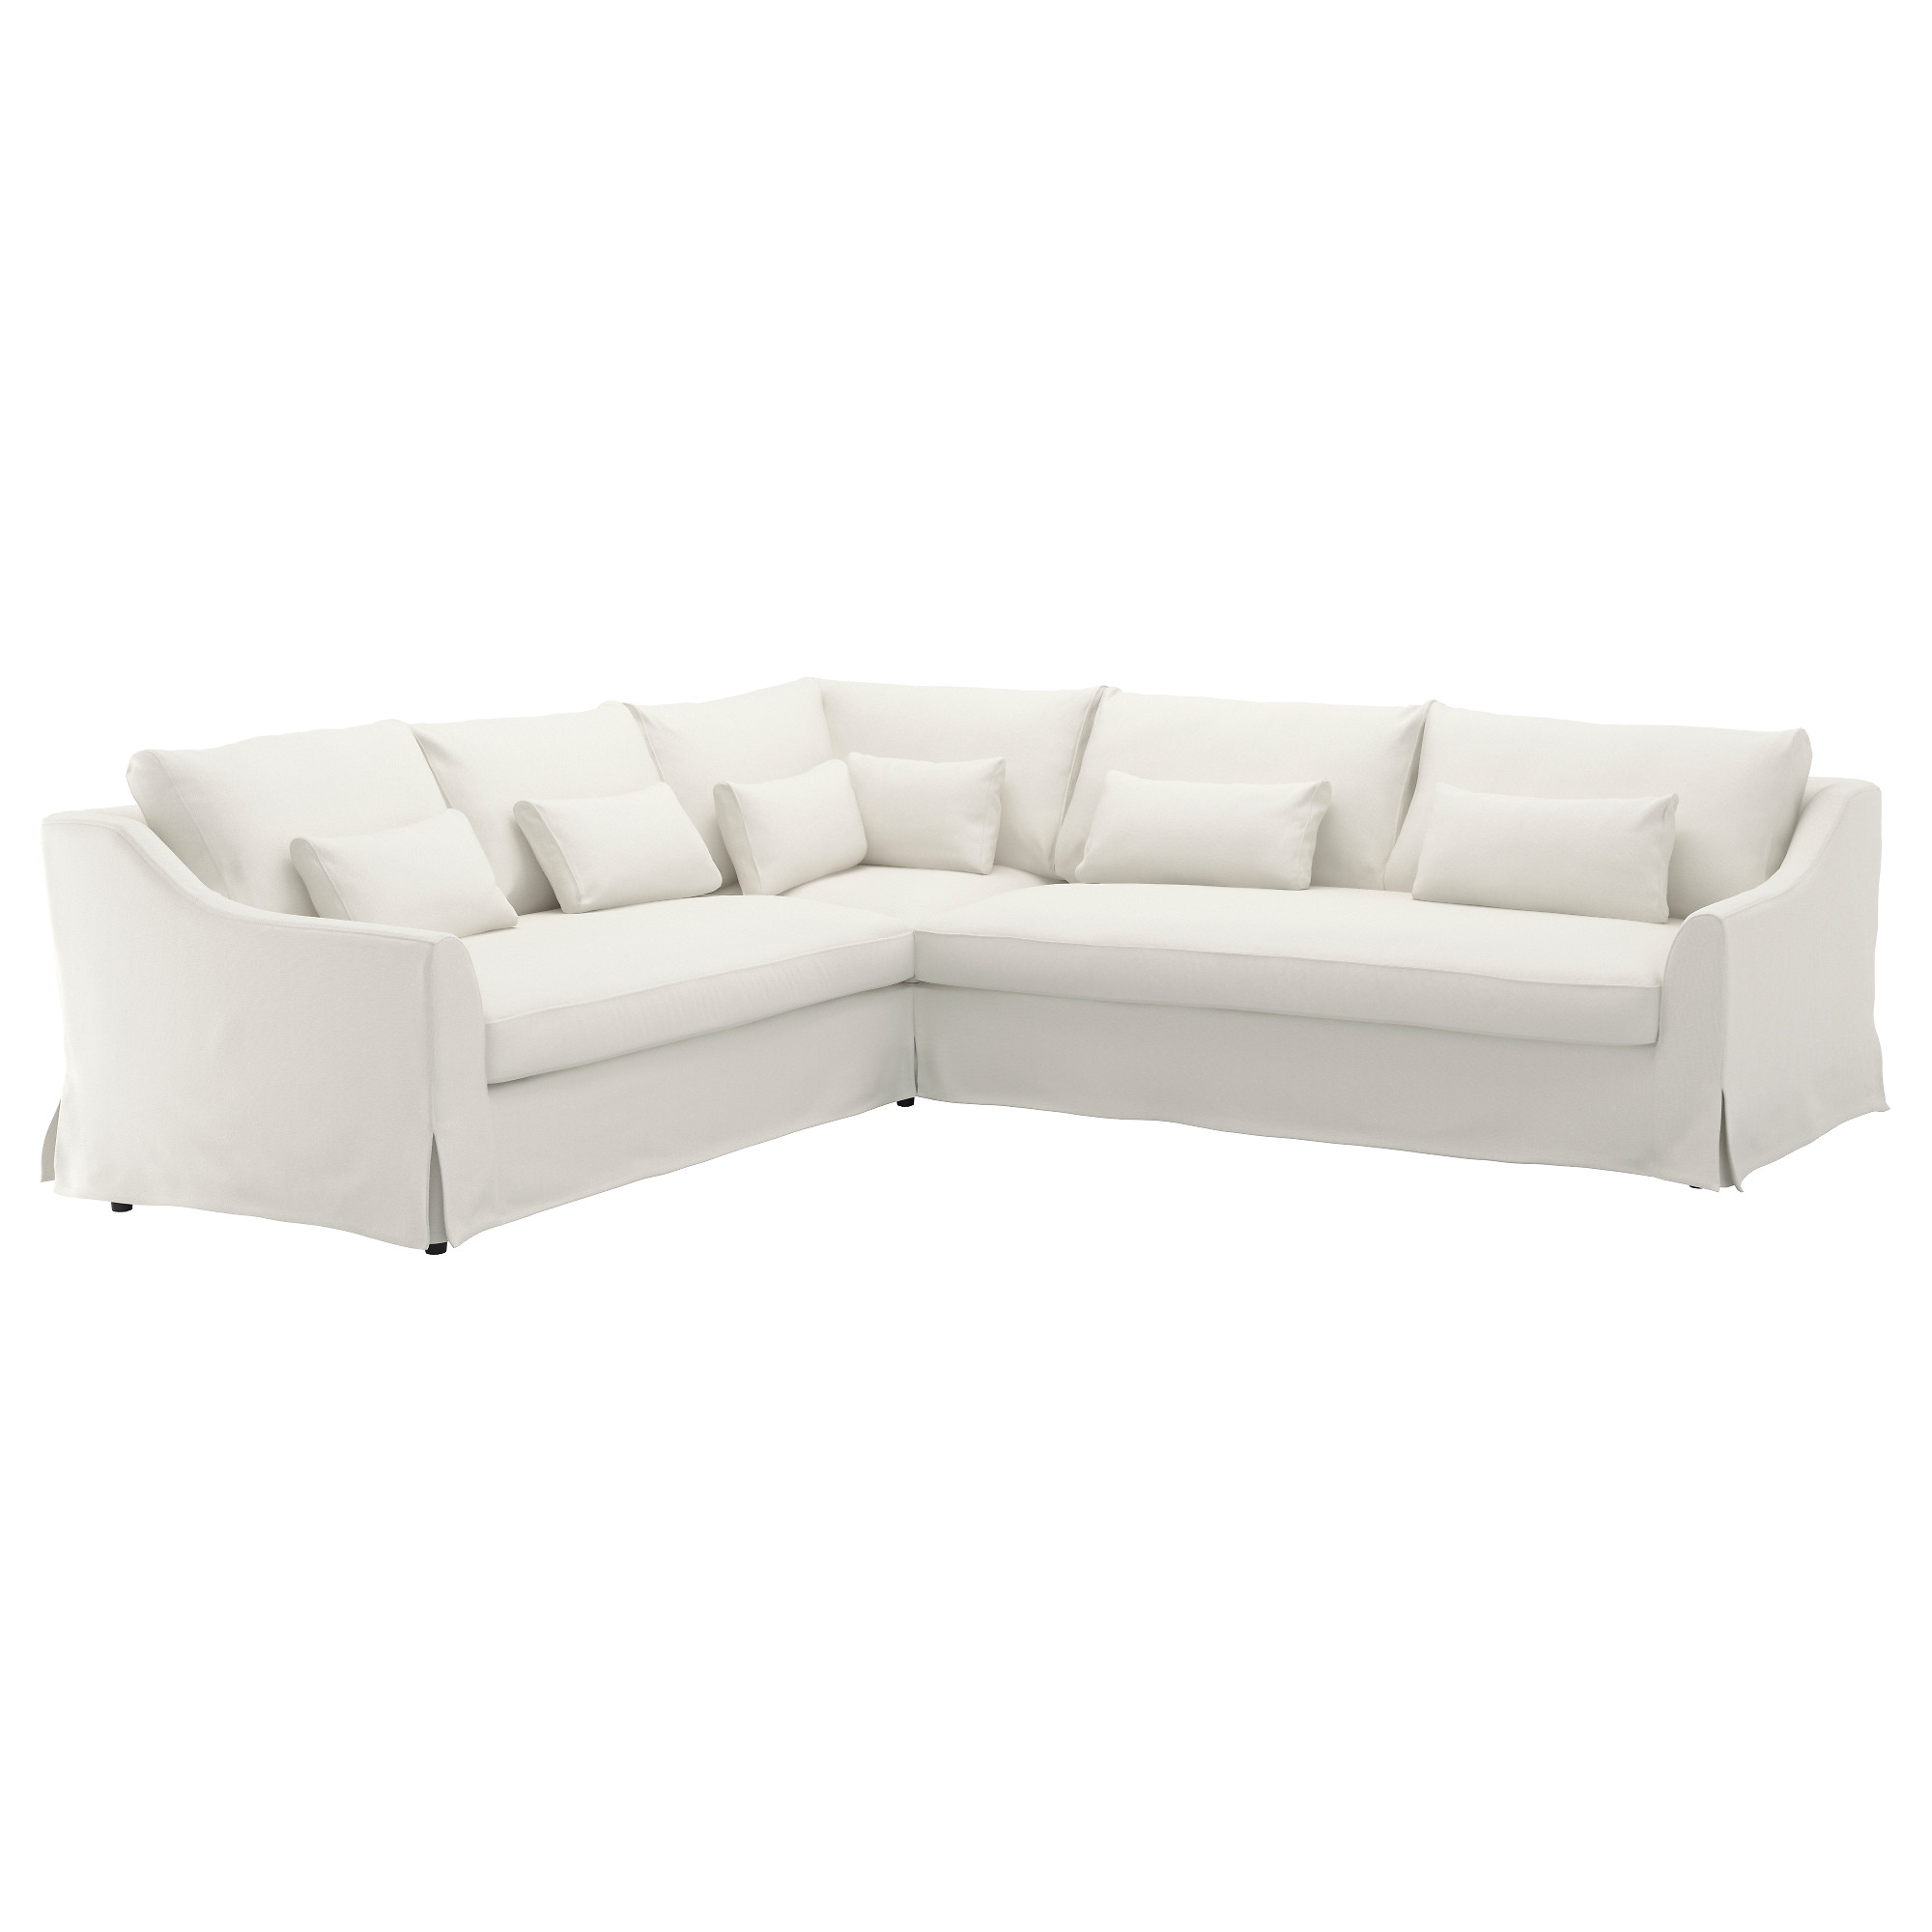 Awesome Farlov Sectional 5 Seat Sofa Right Flodafors White In 2019 Cjindustries Chair Design For Home Cjindustriesco